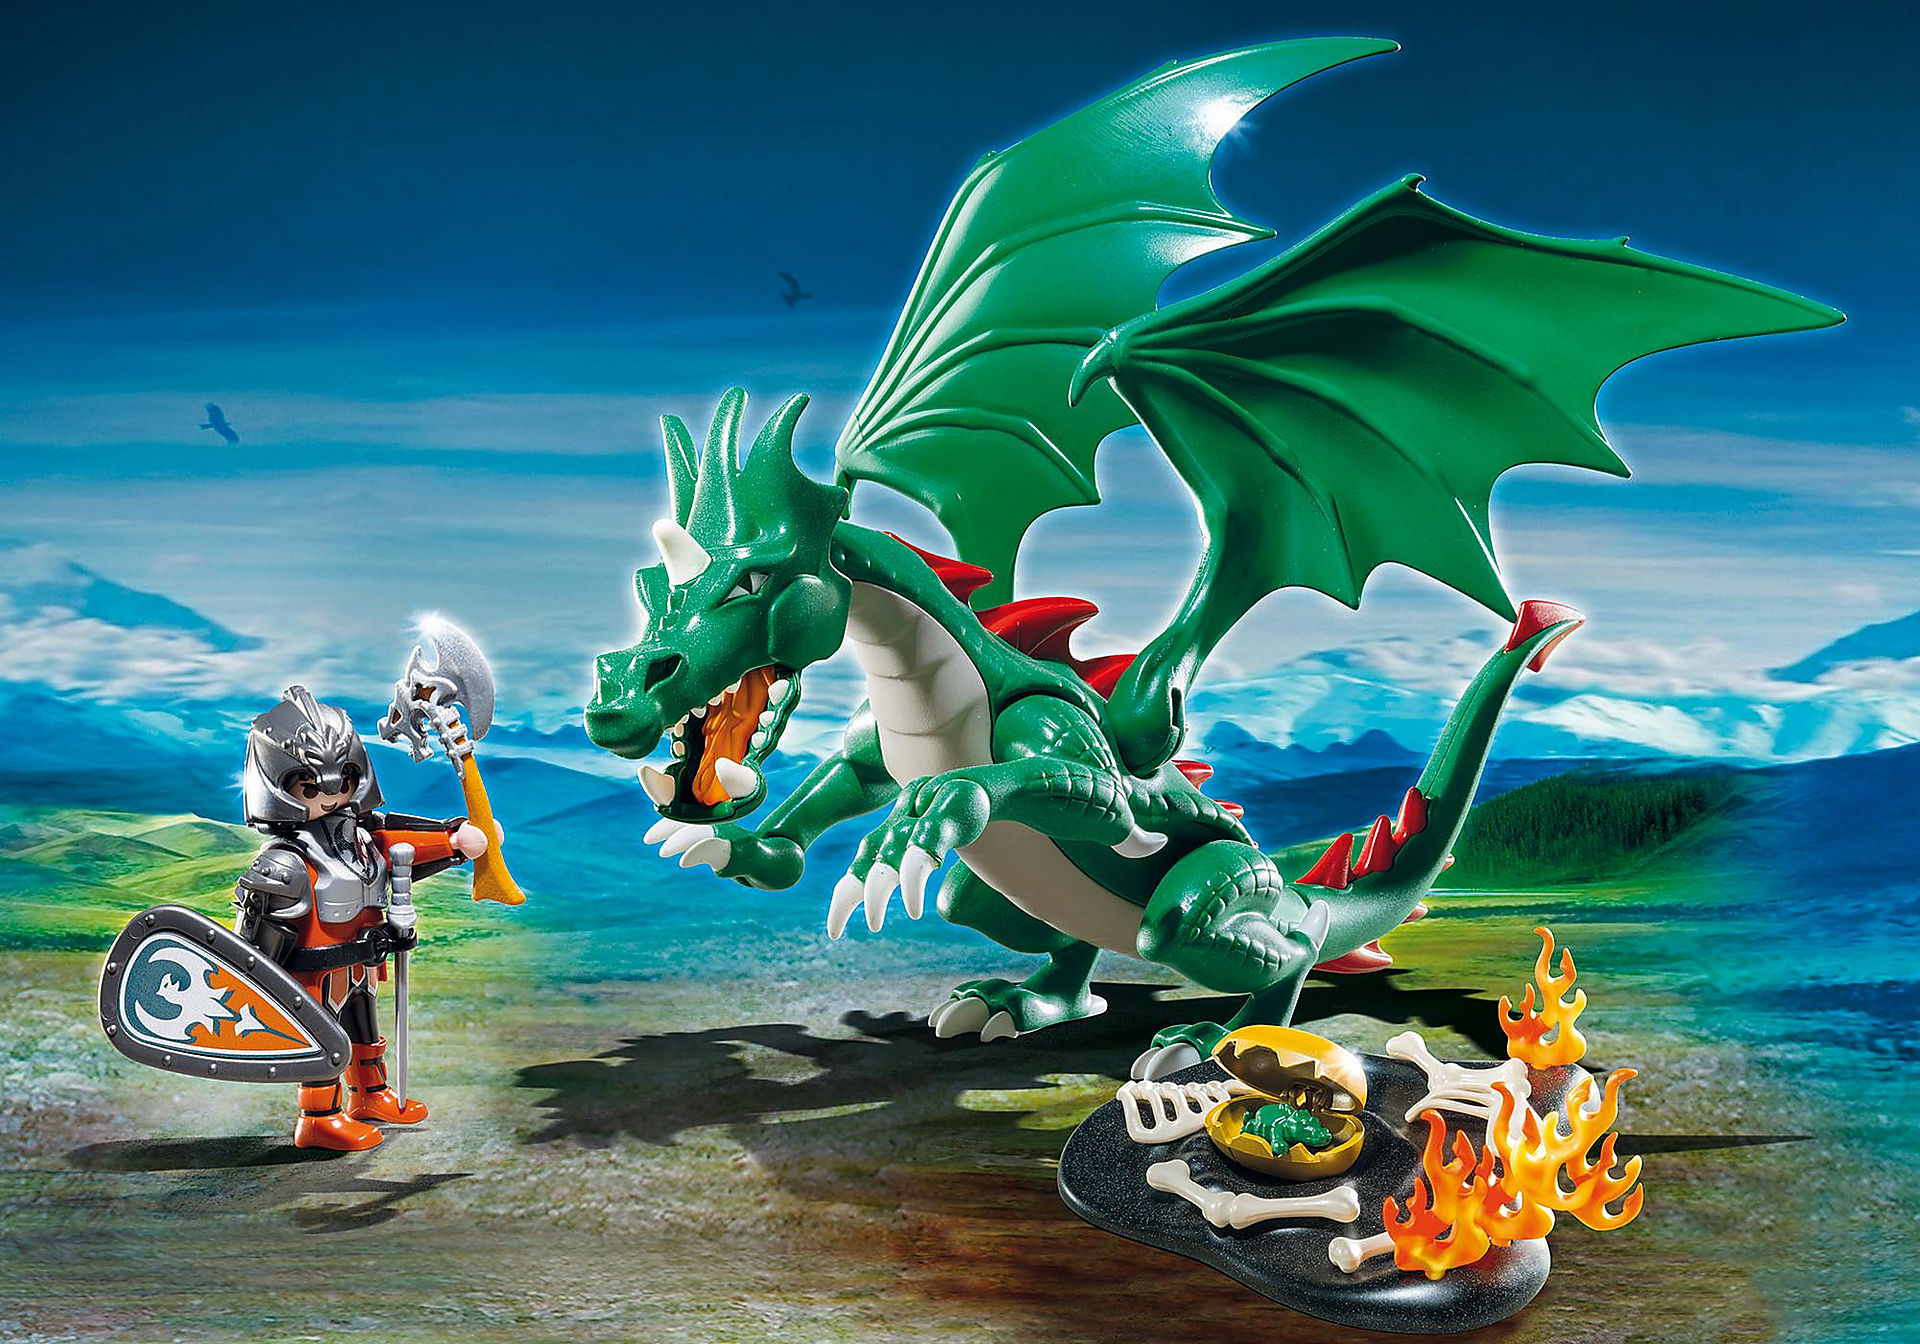 http://media.playmobil.com/i/playmobil/6003_product_detail/Großer Burgdrache